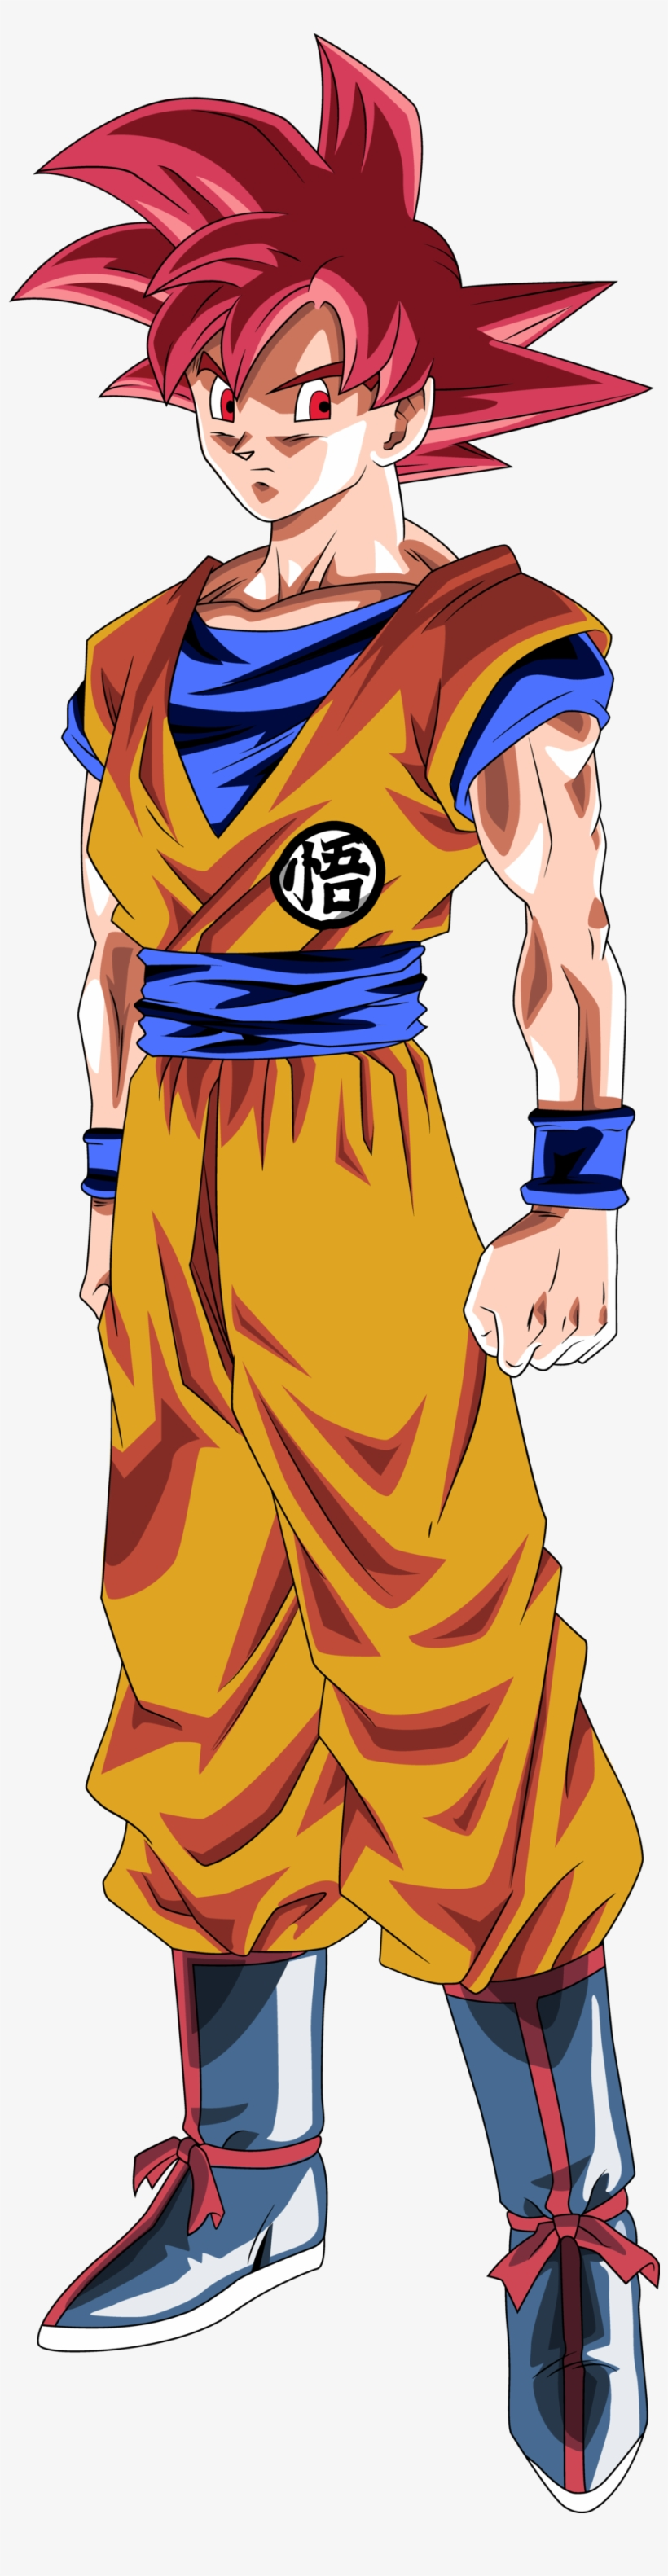 Dragon Ball Gt, Dragon Ball Image, Anime Manga, Goku - Goku Super Saiyan God Png, transparent png #5960785